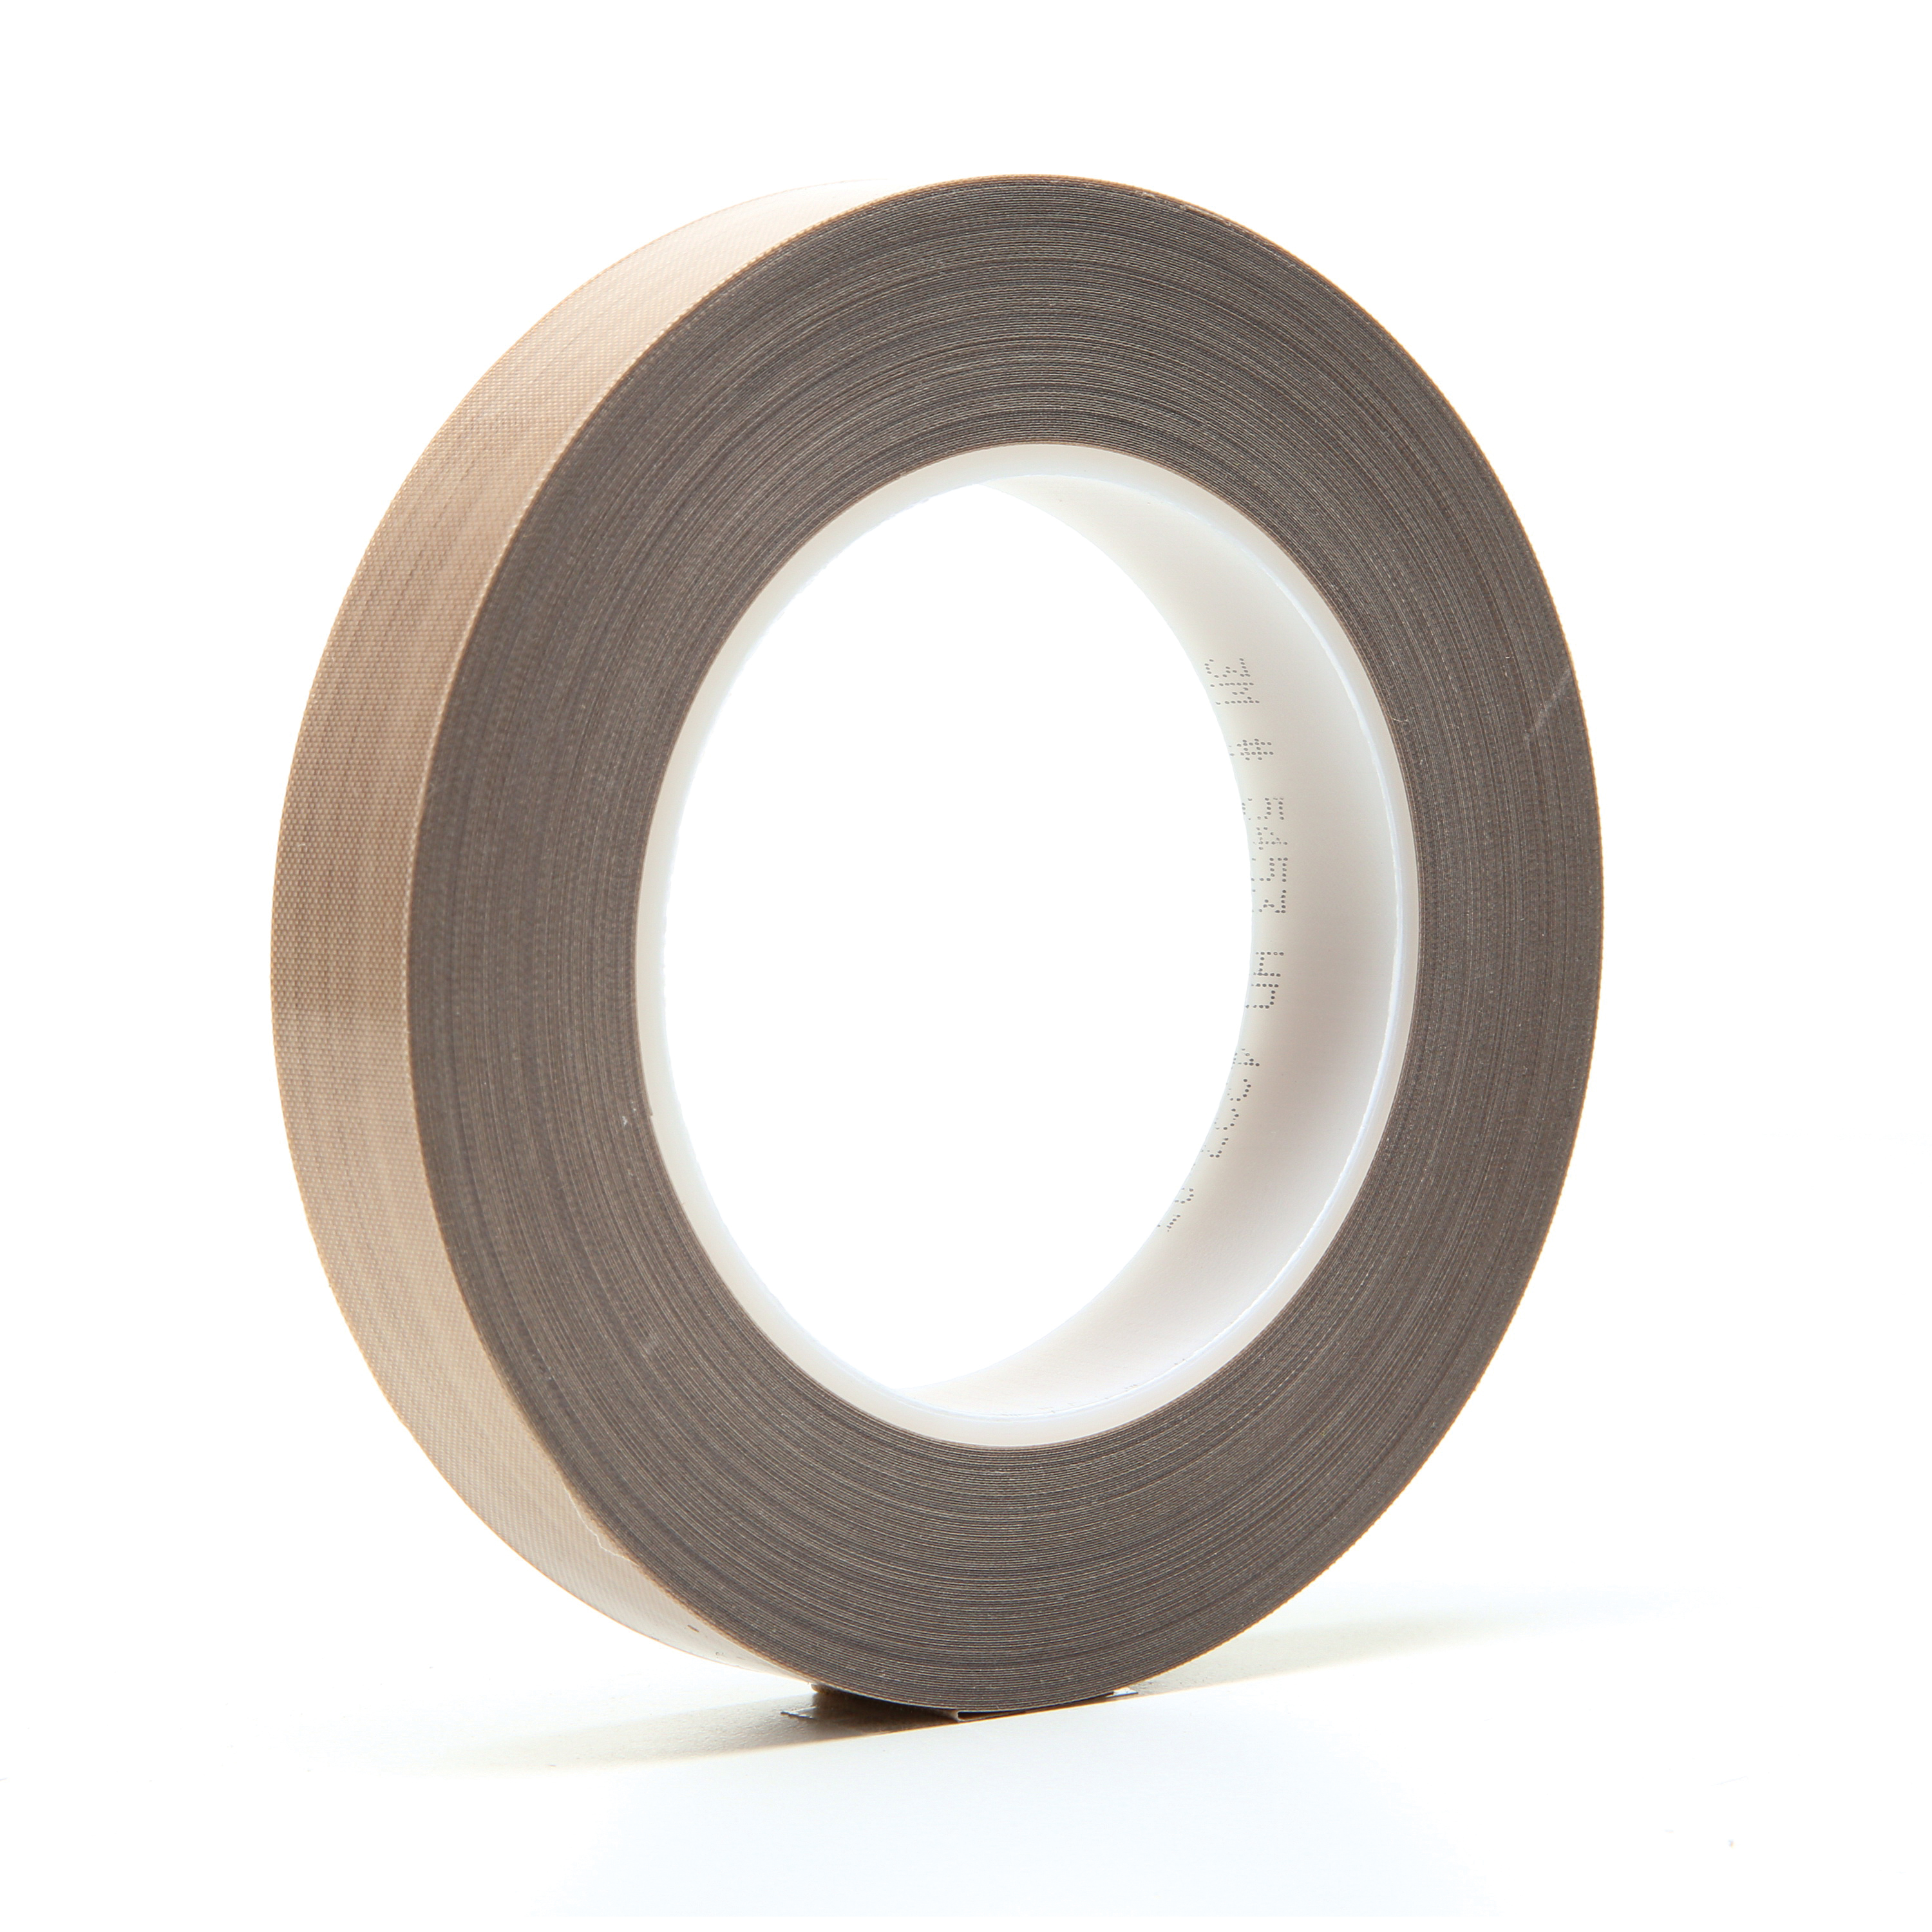 3M™ 021200-16159 Pressure Sensitive Glass Cloth Tape, 36 yd L x 3/4 in W, 8.2 mil THK, Silicon Adhesive, Woven Glass Cloth Impregnated with PTFE Backing, Brown